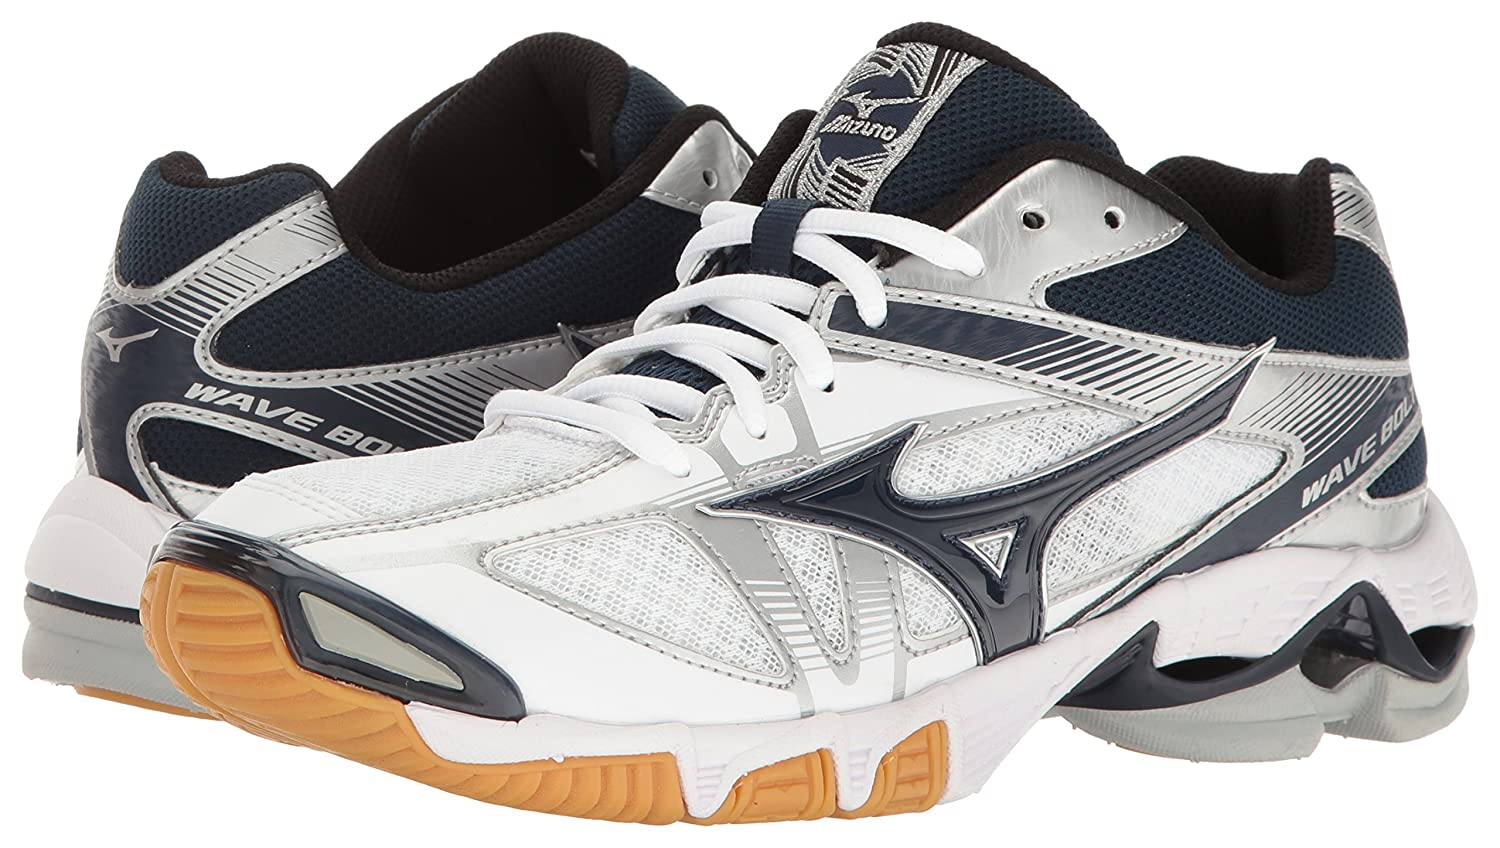 Mizuno Volleyball-Shoes Women's Wave Bolt 6 Volleyball-Shoes Mizuno B01N52JLXE 8 B(M) US|White/Navy 8acee5